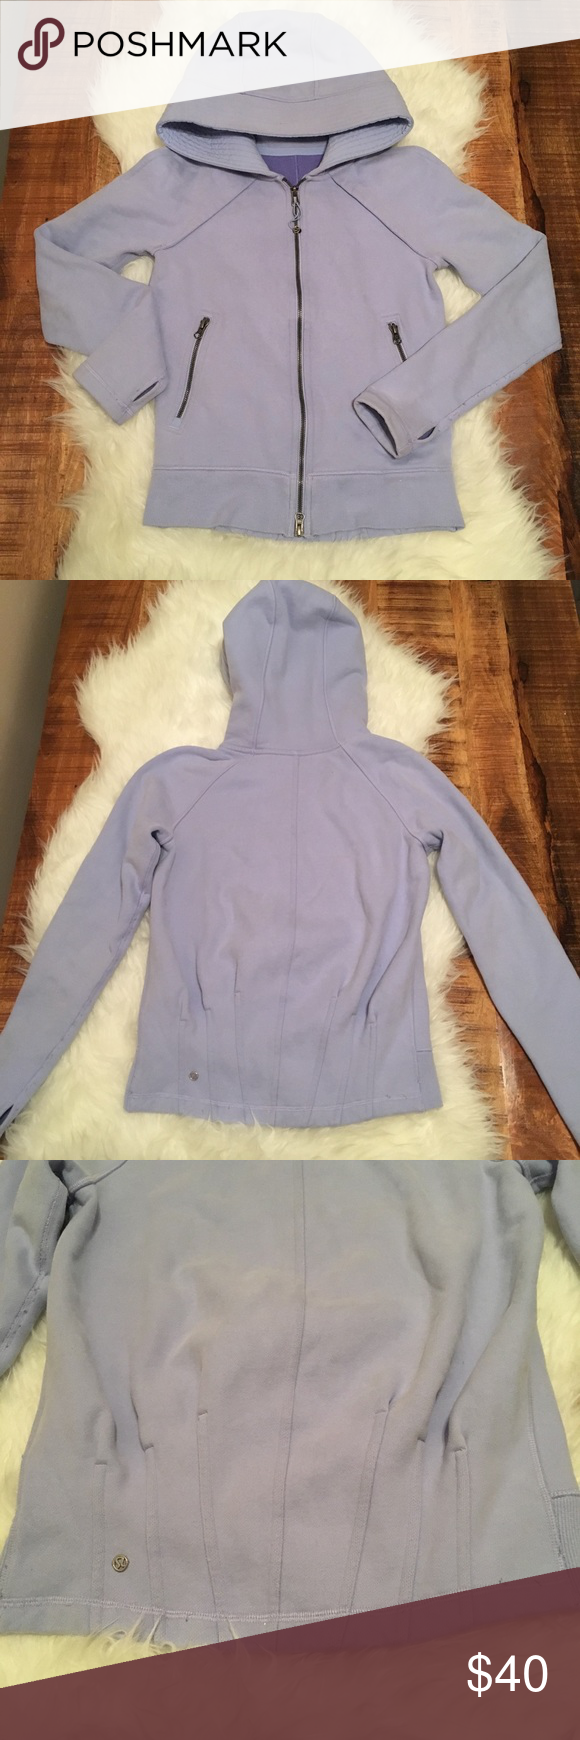 Lululemon fleece lined zip up hoodie sweatshirt lululemon